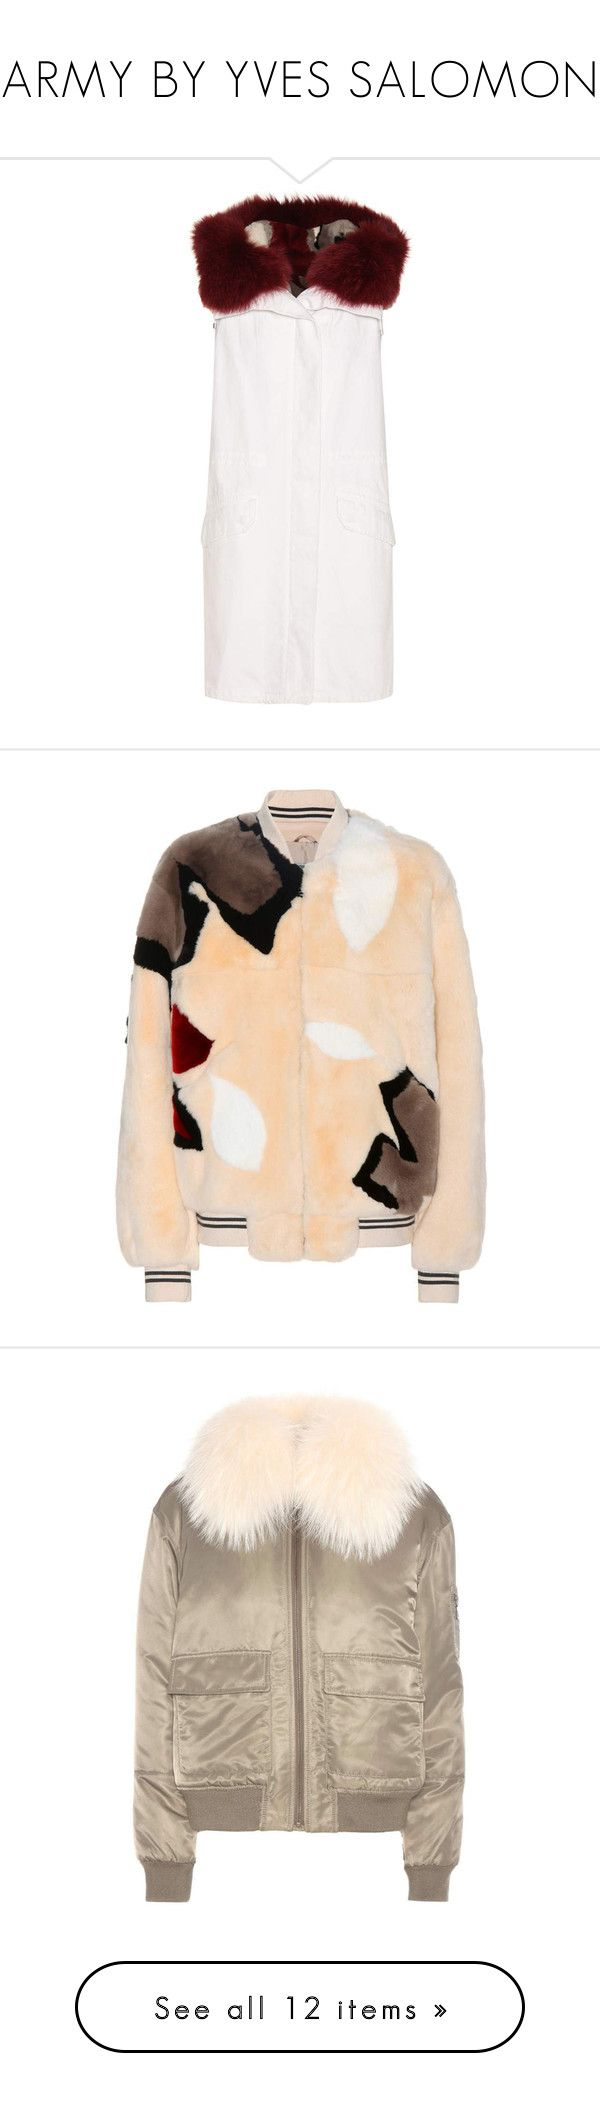 """""""ARMY BY YVES SALOMON"""" by mari-sv ❤ liked on Polyvore featuring outerwear, vests, jackets, multicoloured, vest waistcoat, fur waistcoat, white fur vests, white waistcoat, reversible vest and fur jacket"""